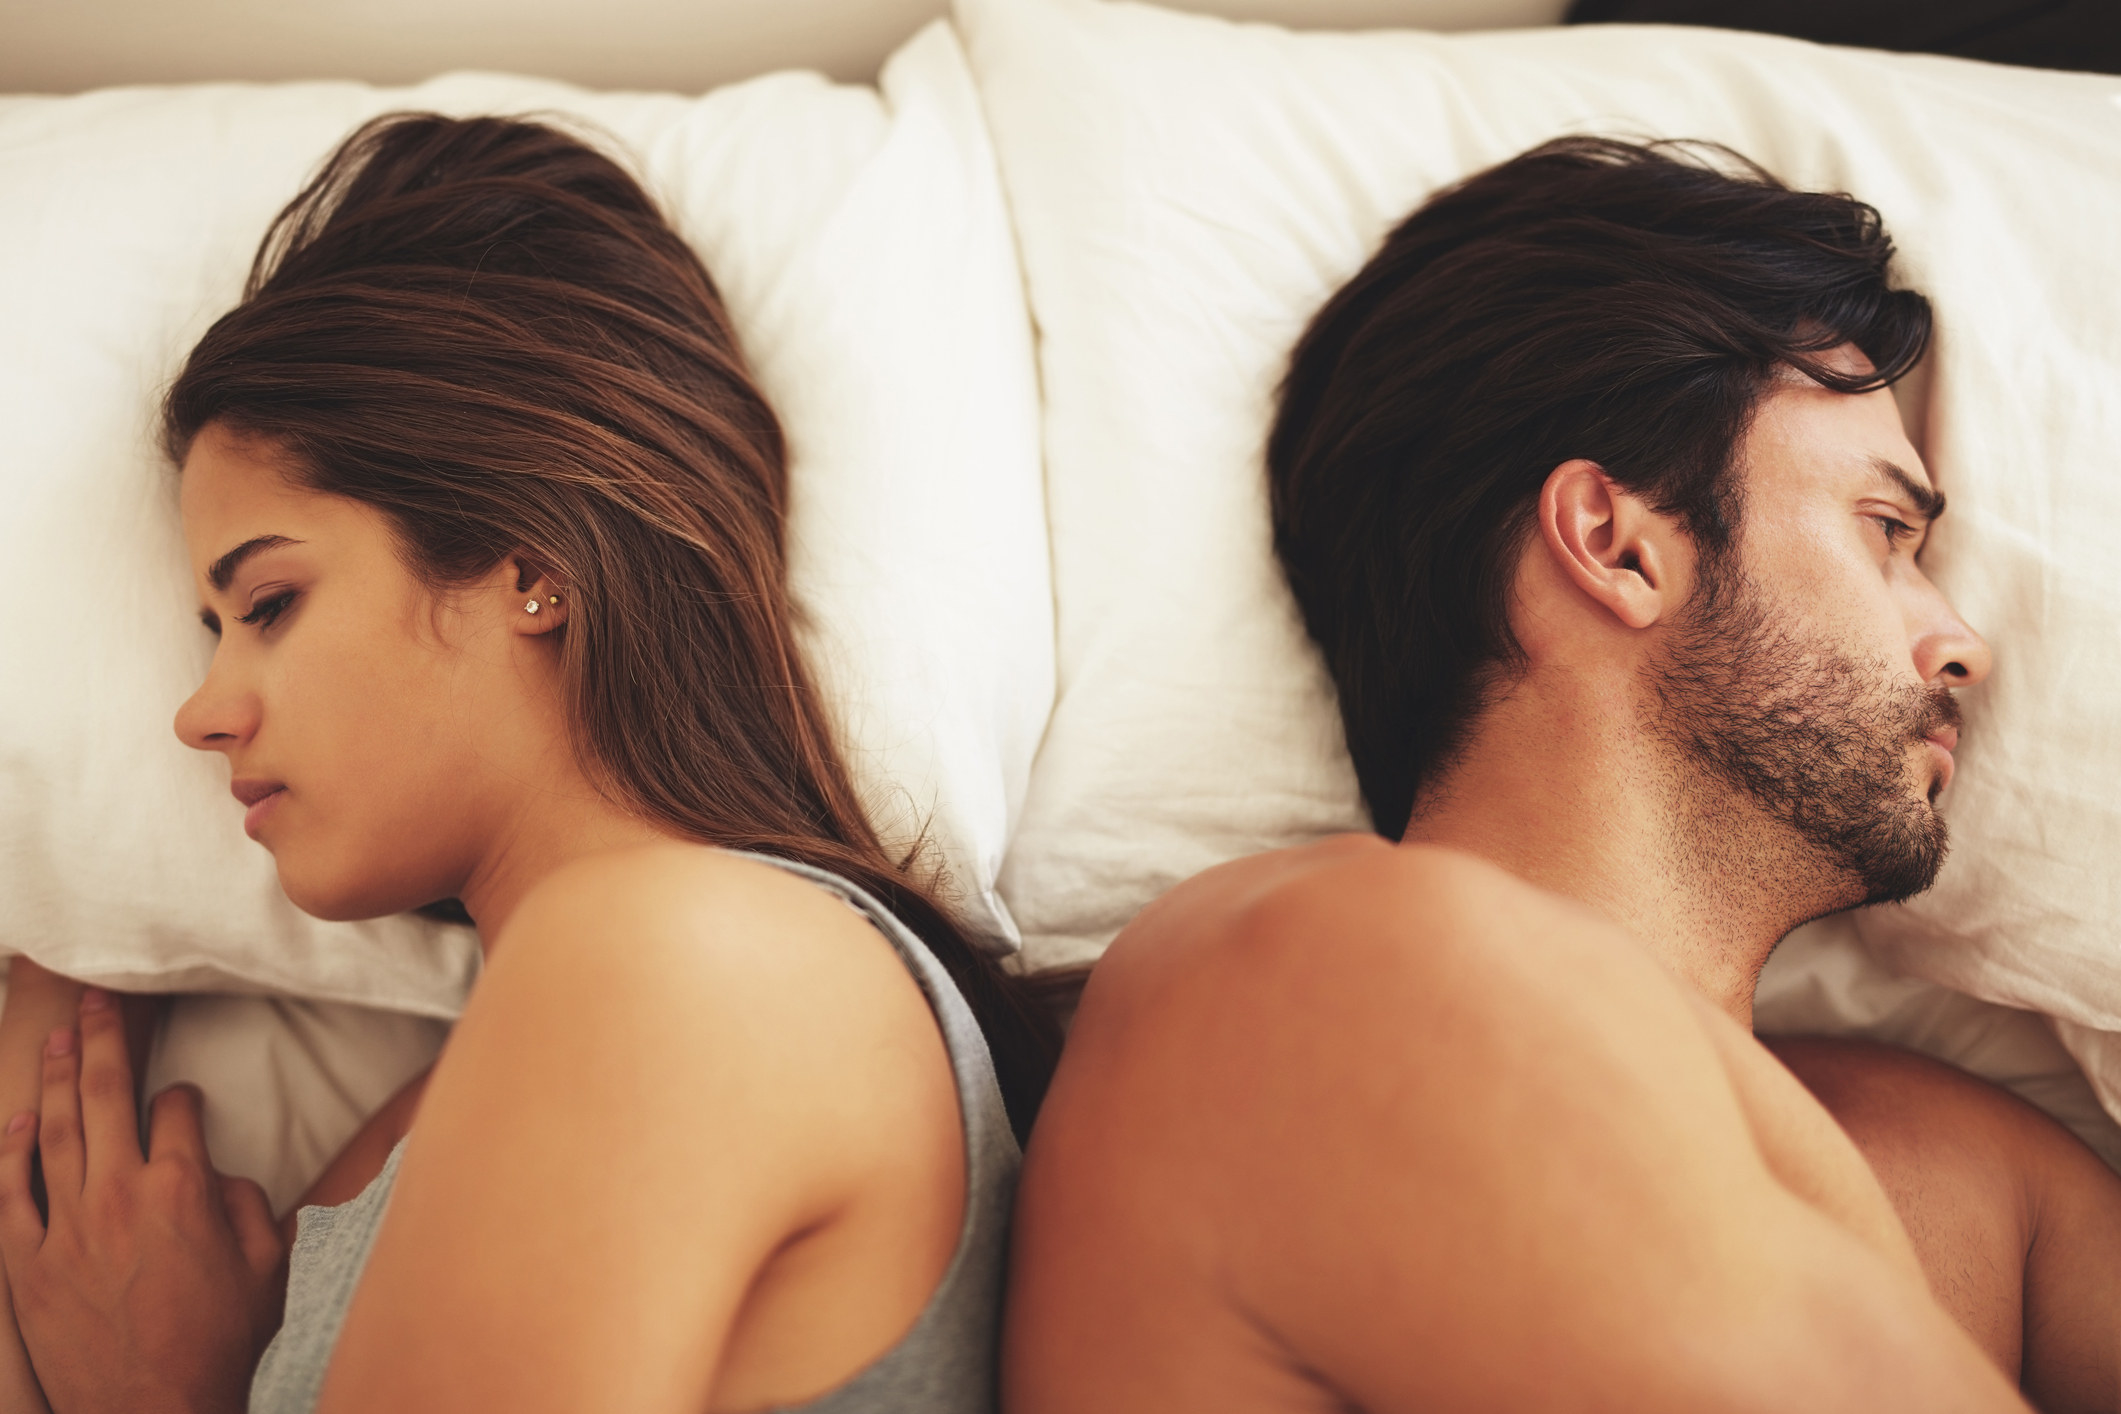 Couple going to sleep mad at each other